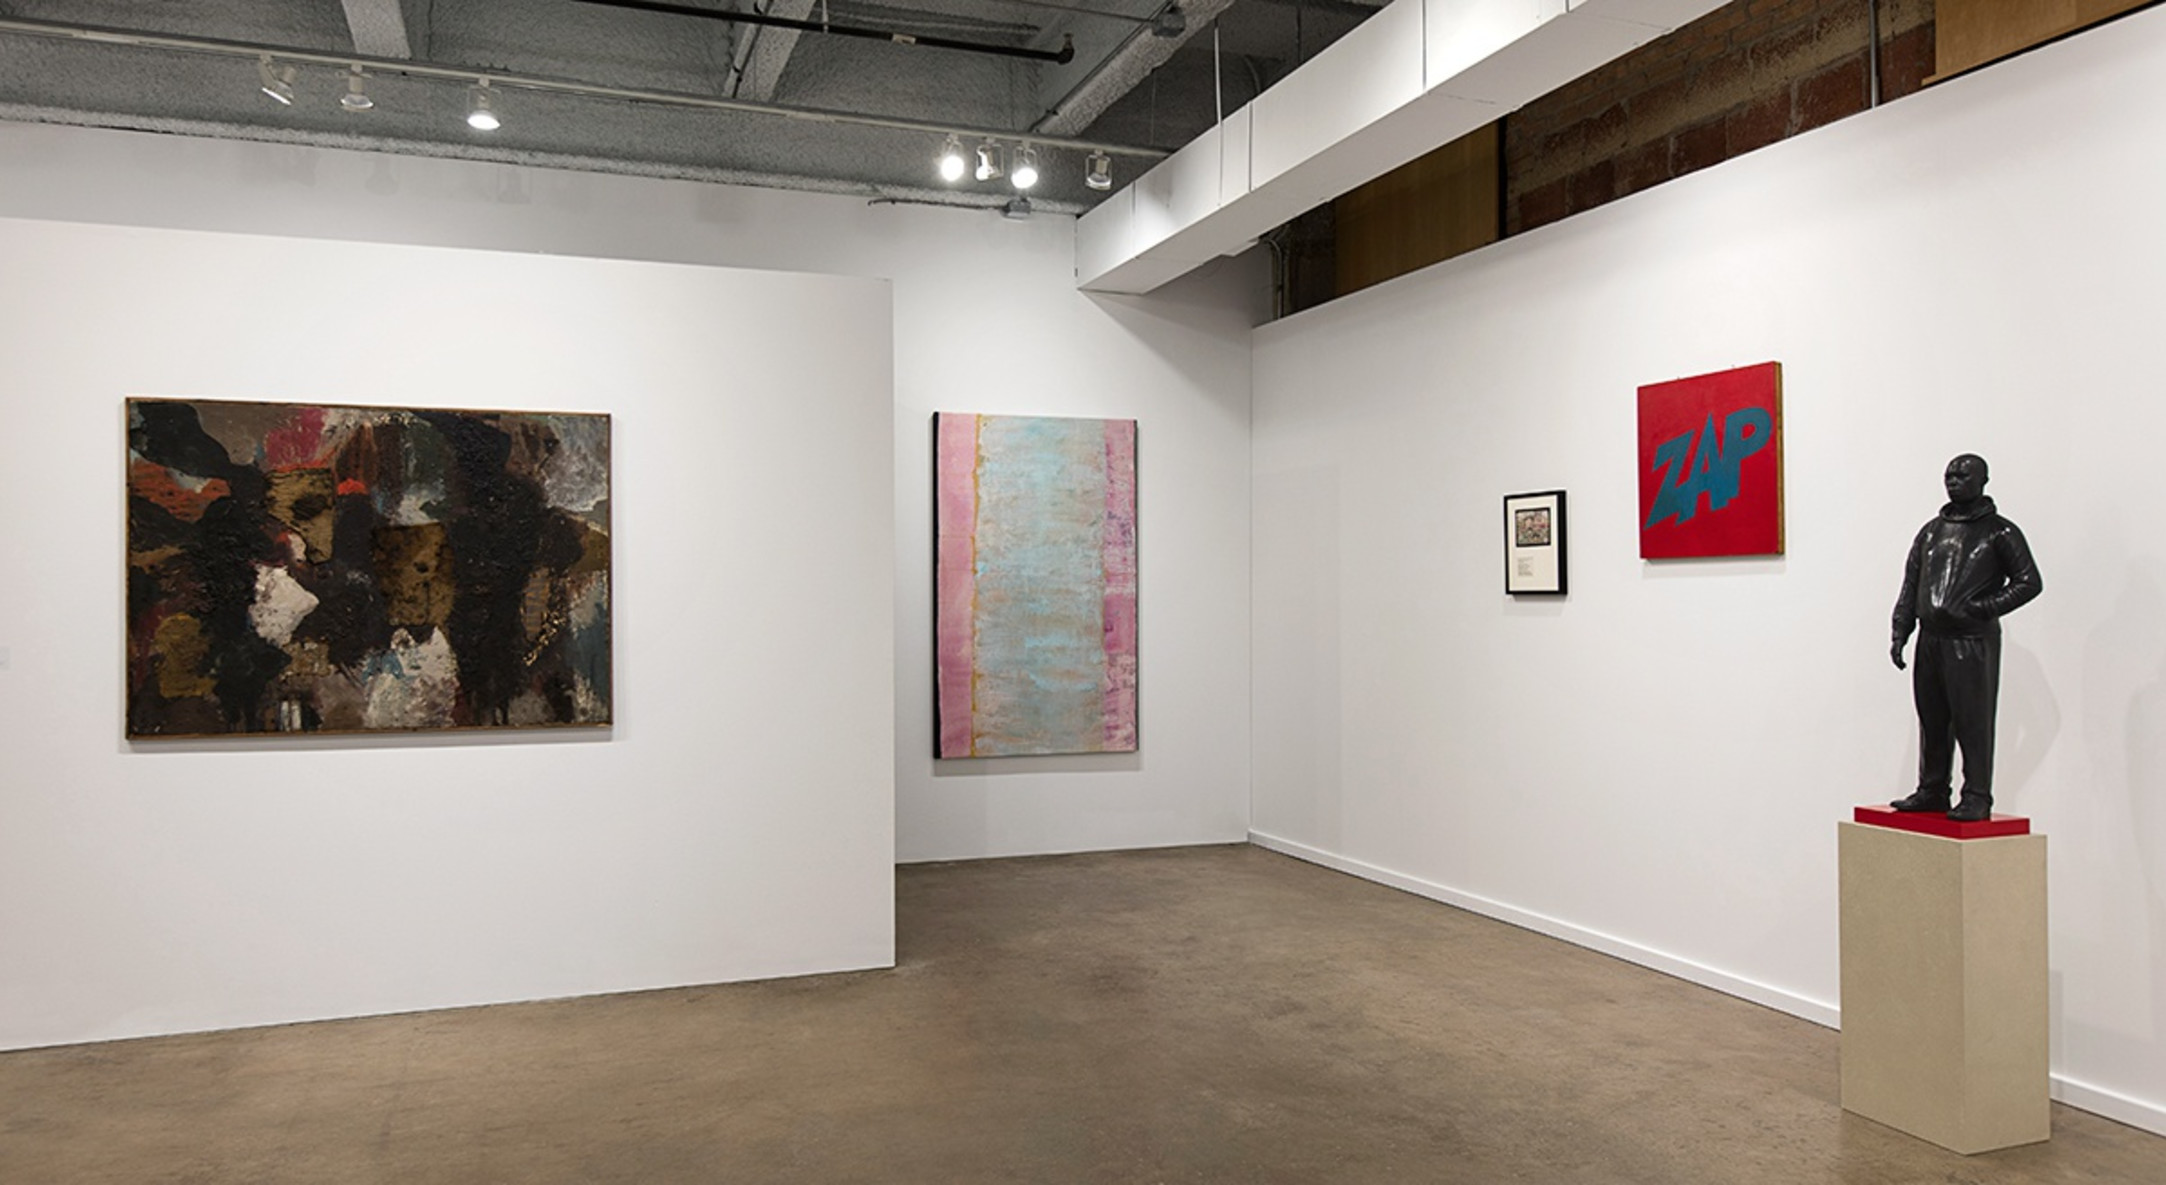 Installation view of Hales Gallery booth at Dallas Art Fair 2016